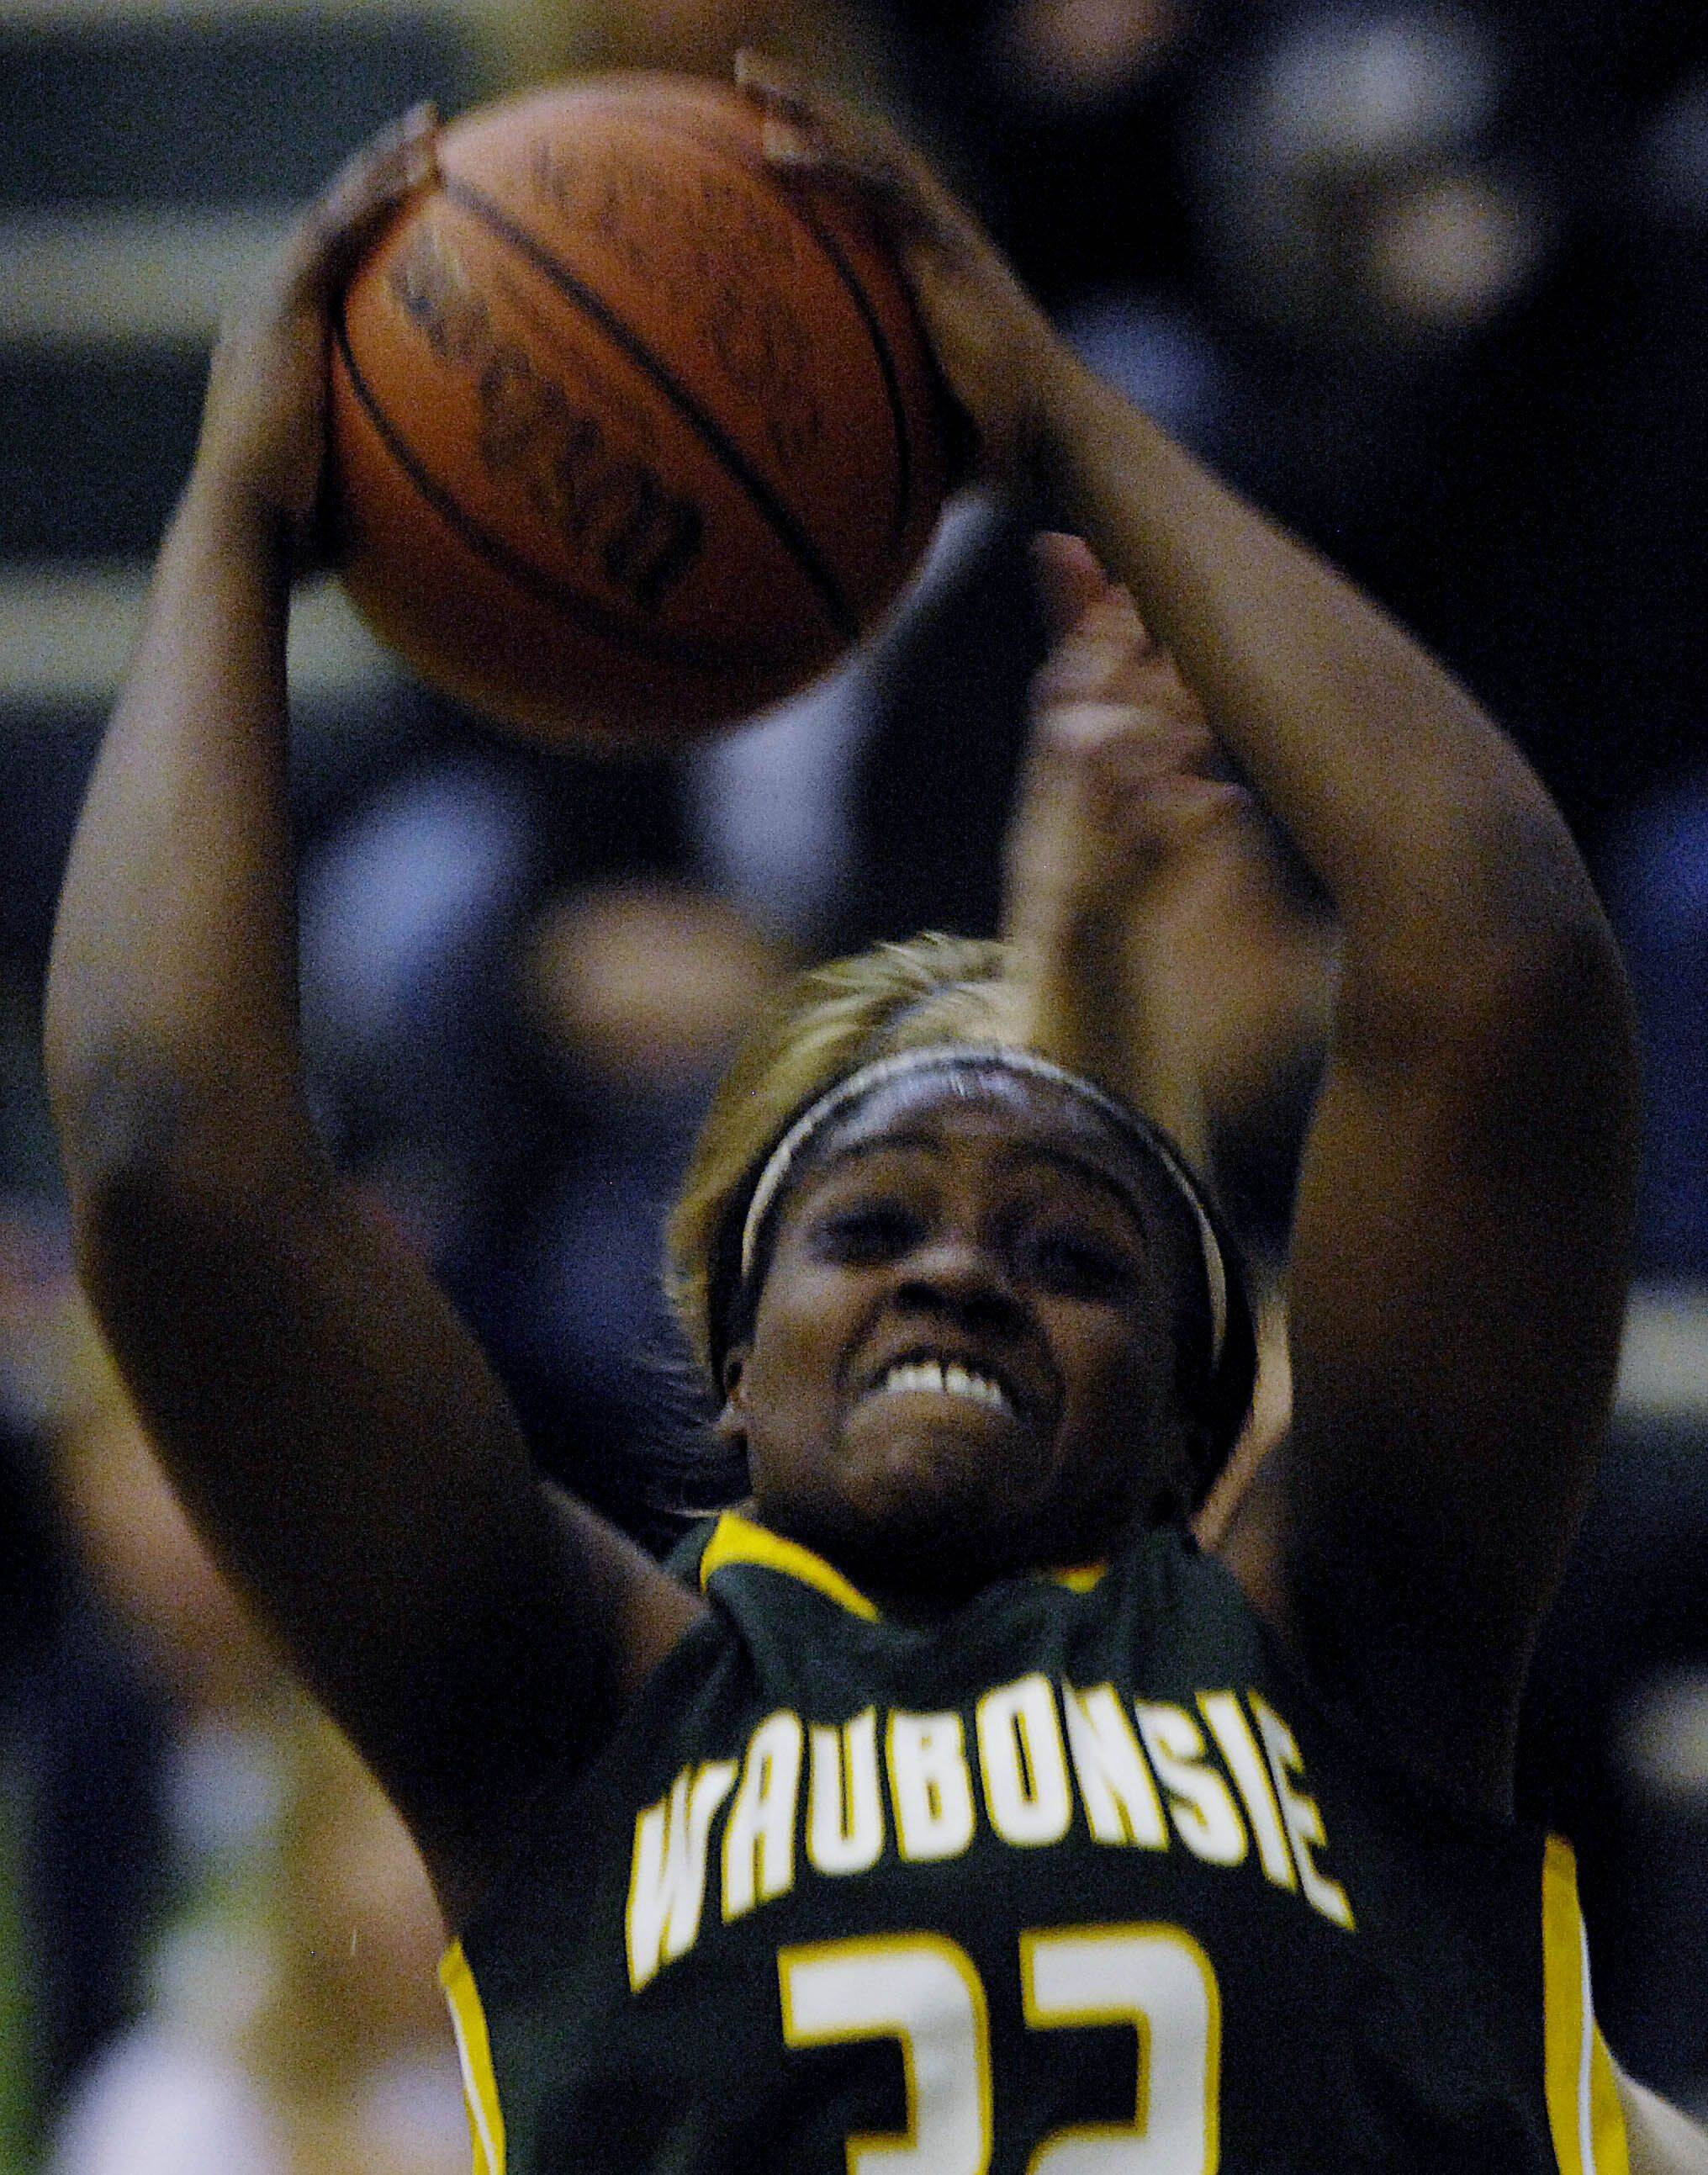 Girls basketball action from the Waubonsie Valley vs. Bartlett game Tuesday, November 30, 2010.